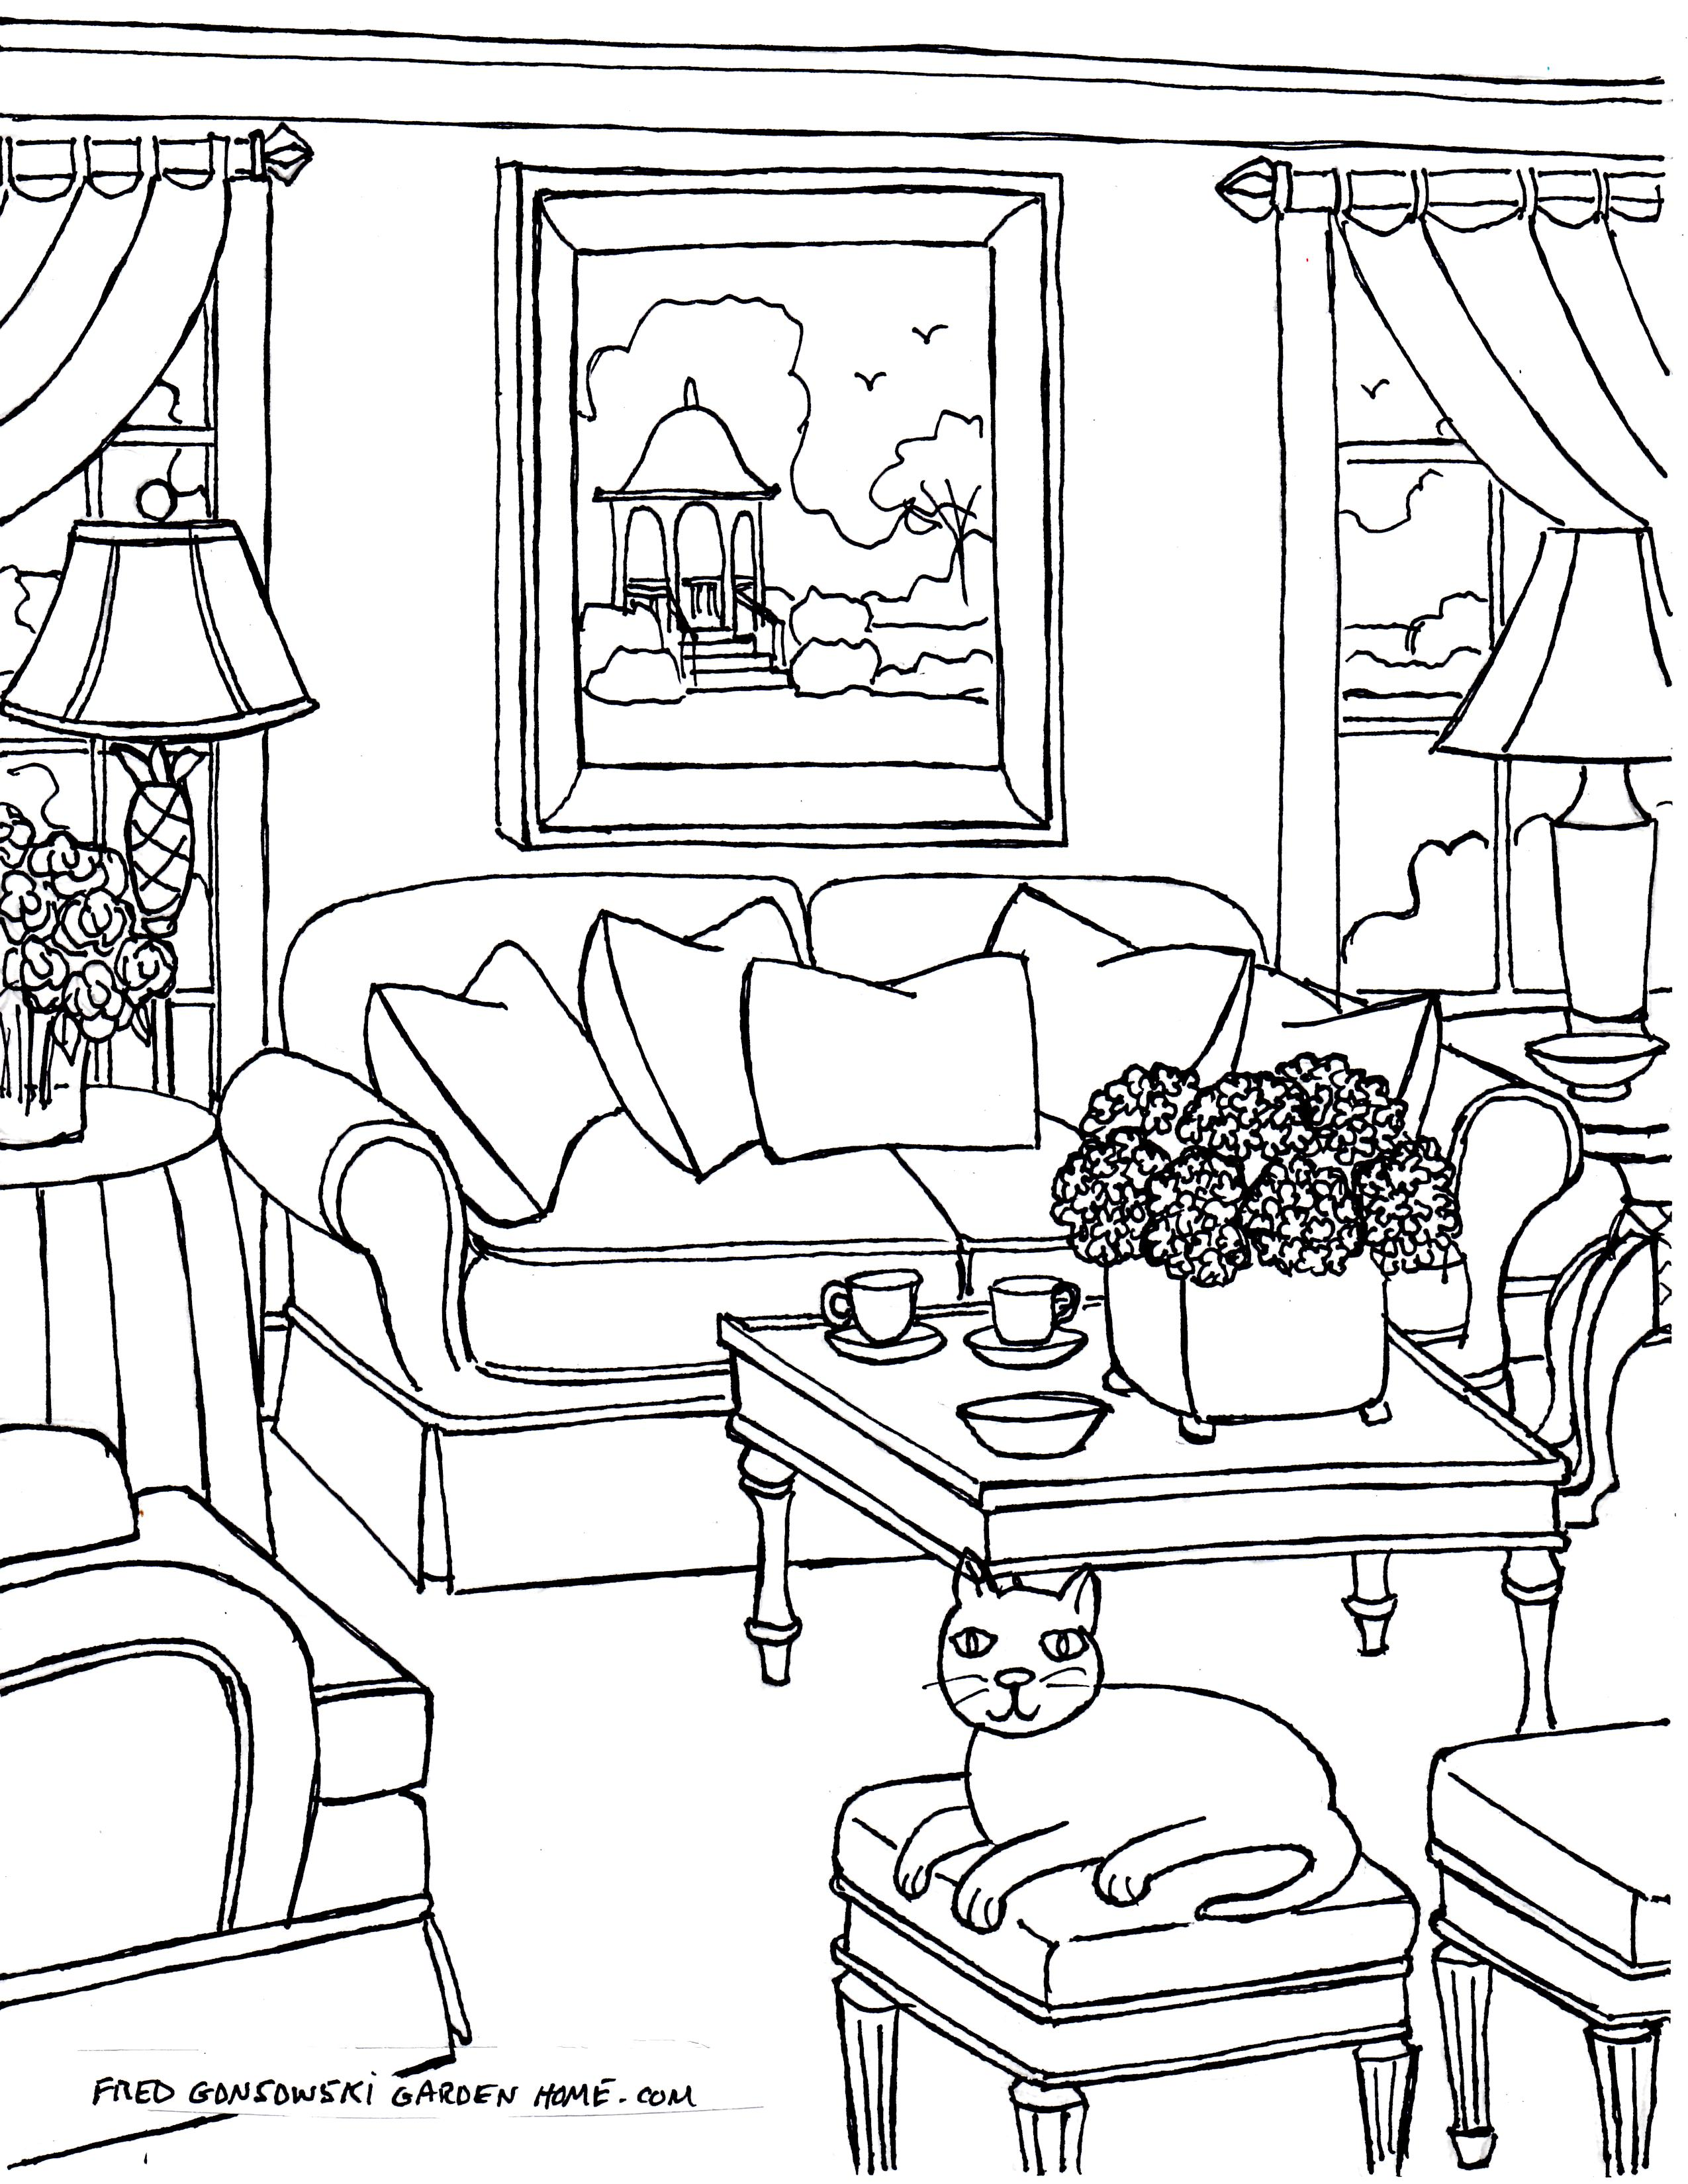 Drawn chair coloring page Living Some print Living Drawings